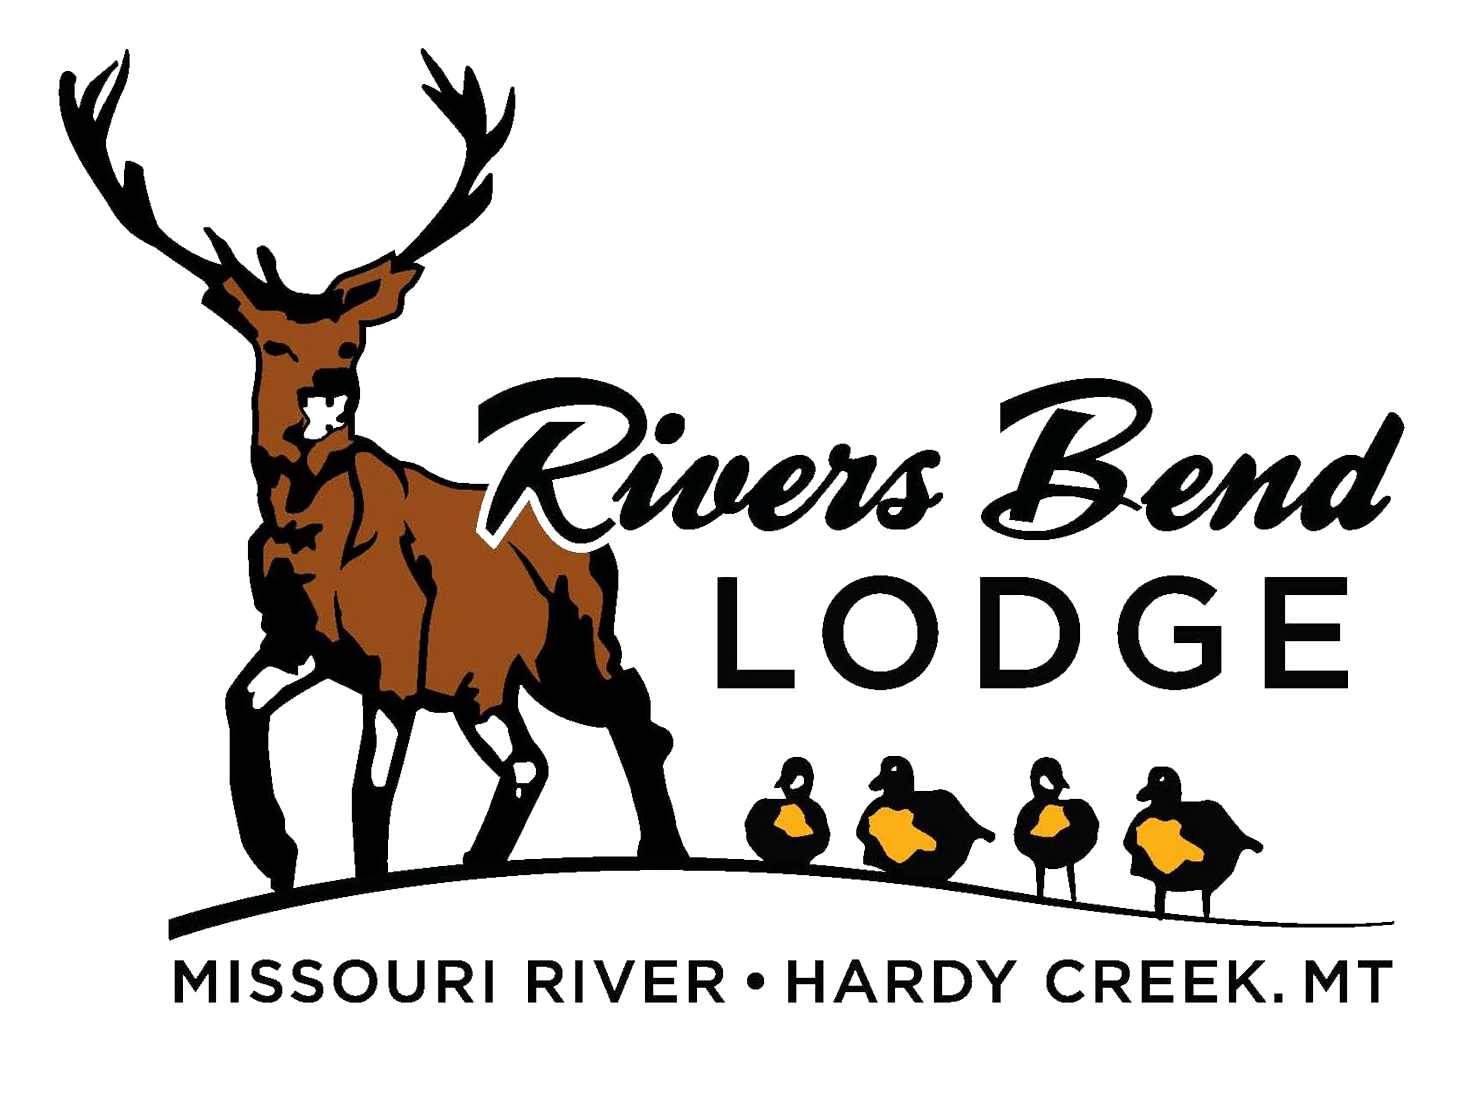 River's Bend Lodge